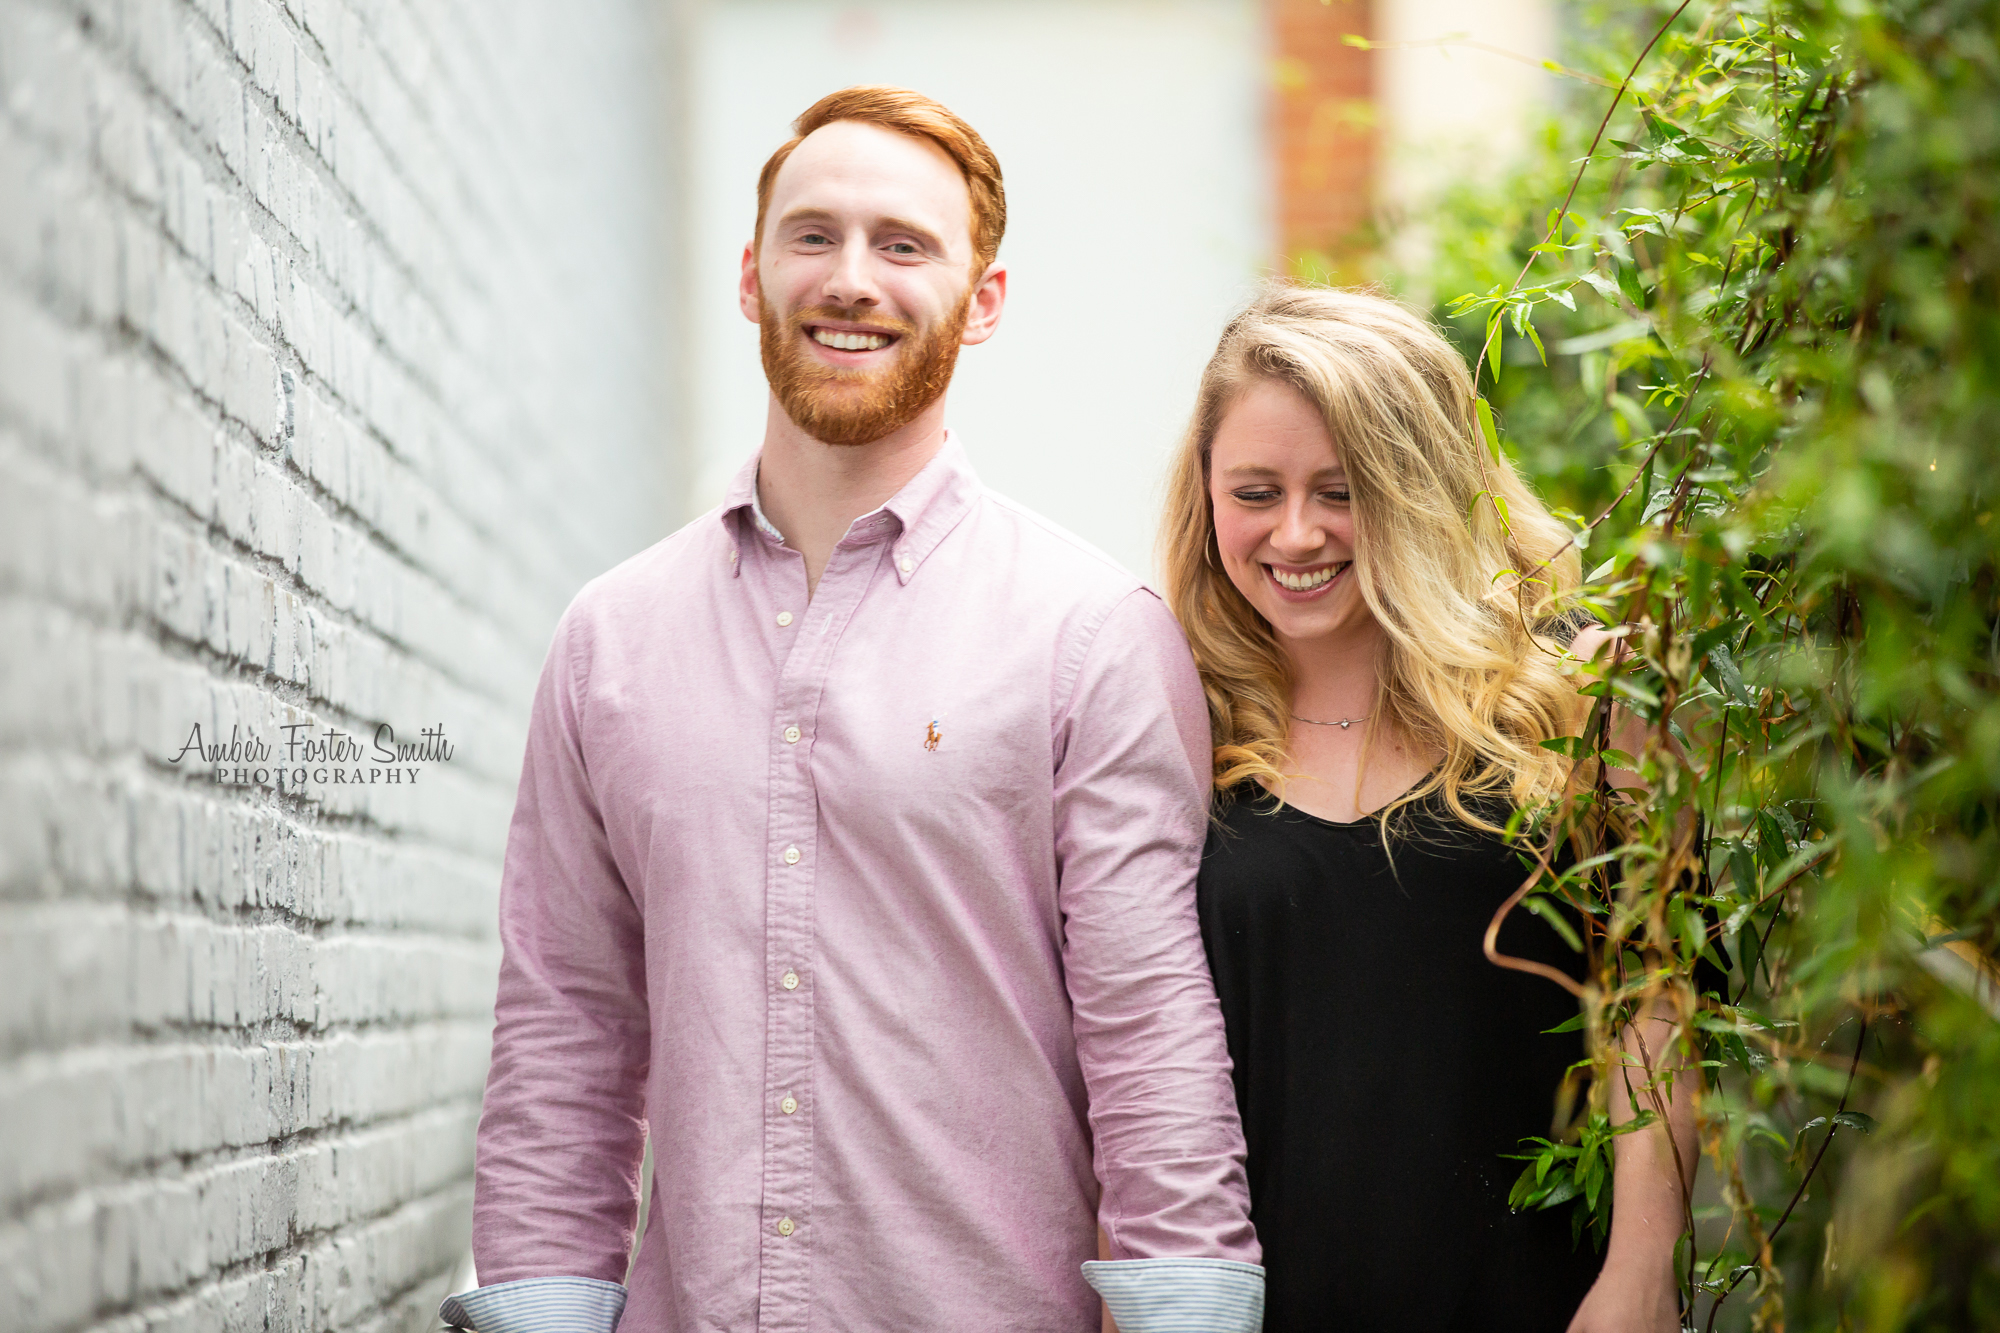 mber Foster Smith Photography - Holly Springs, NC | Raleigh Engagement and Wedding Photographer